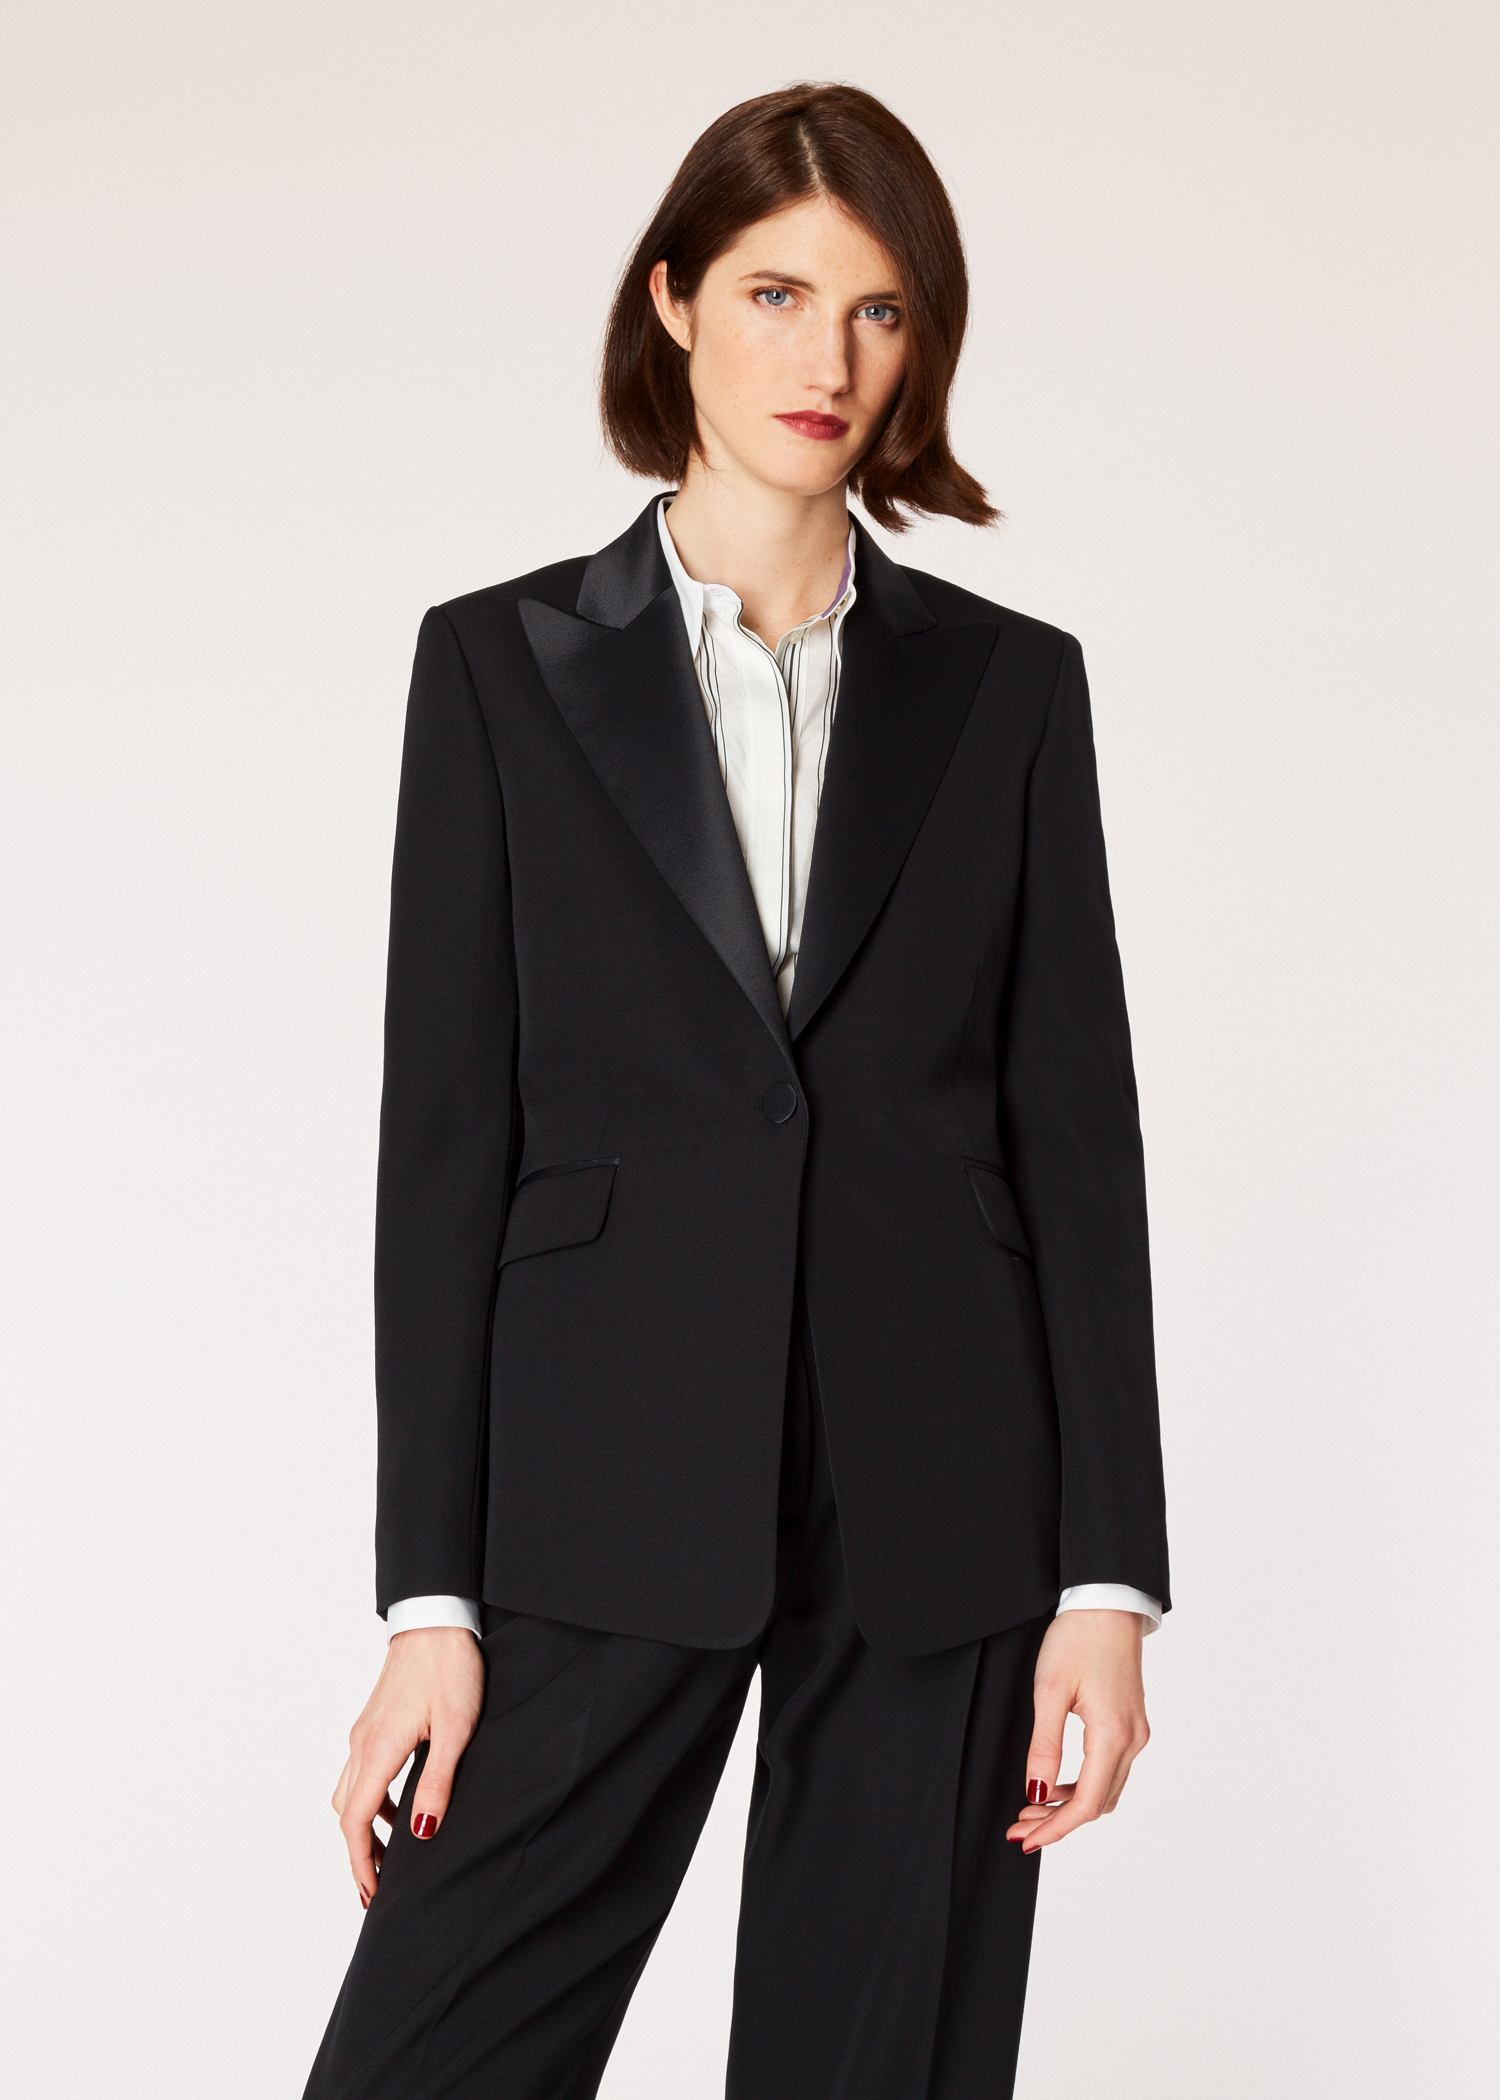 0e082c44e8 Model front close up - Women's Slim-Fit Black One-Button Wool Tuxedo  Collection